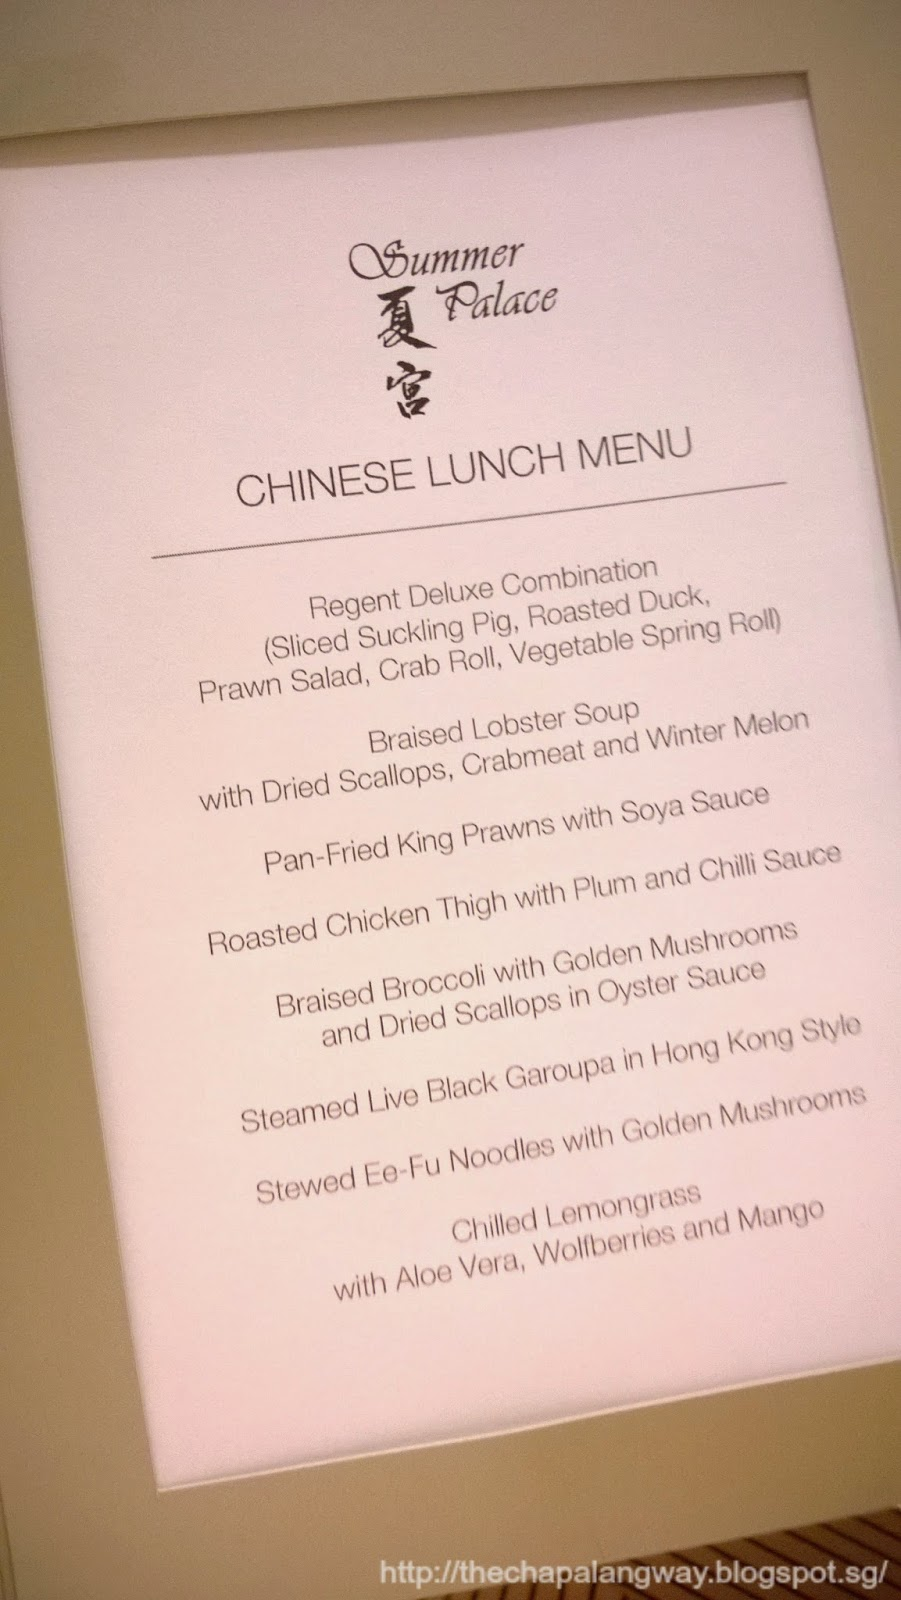 regent singapore summer palace lunch menu, chinese lunch menu, food review